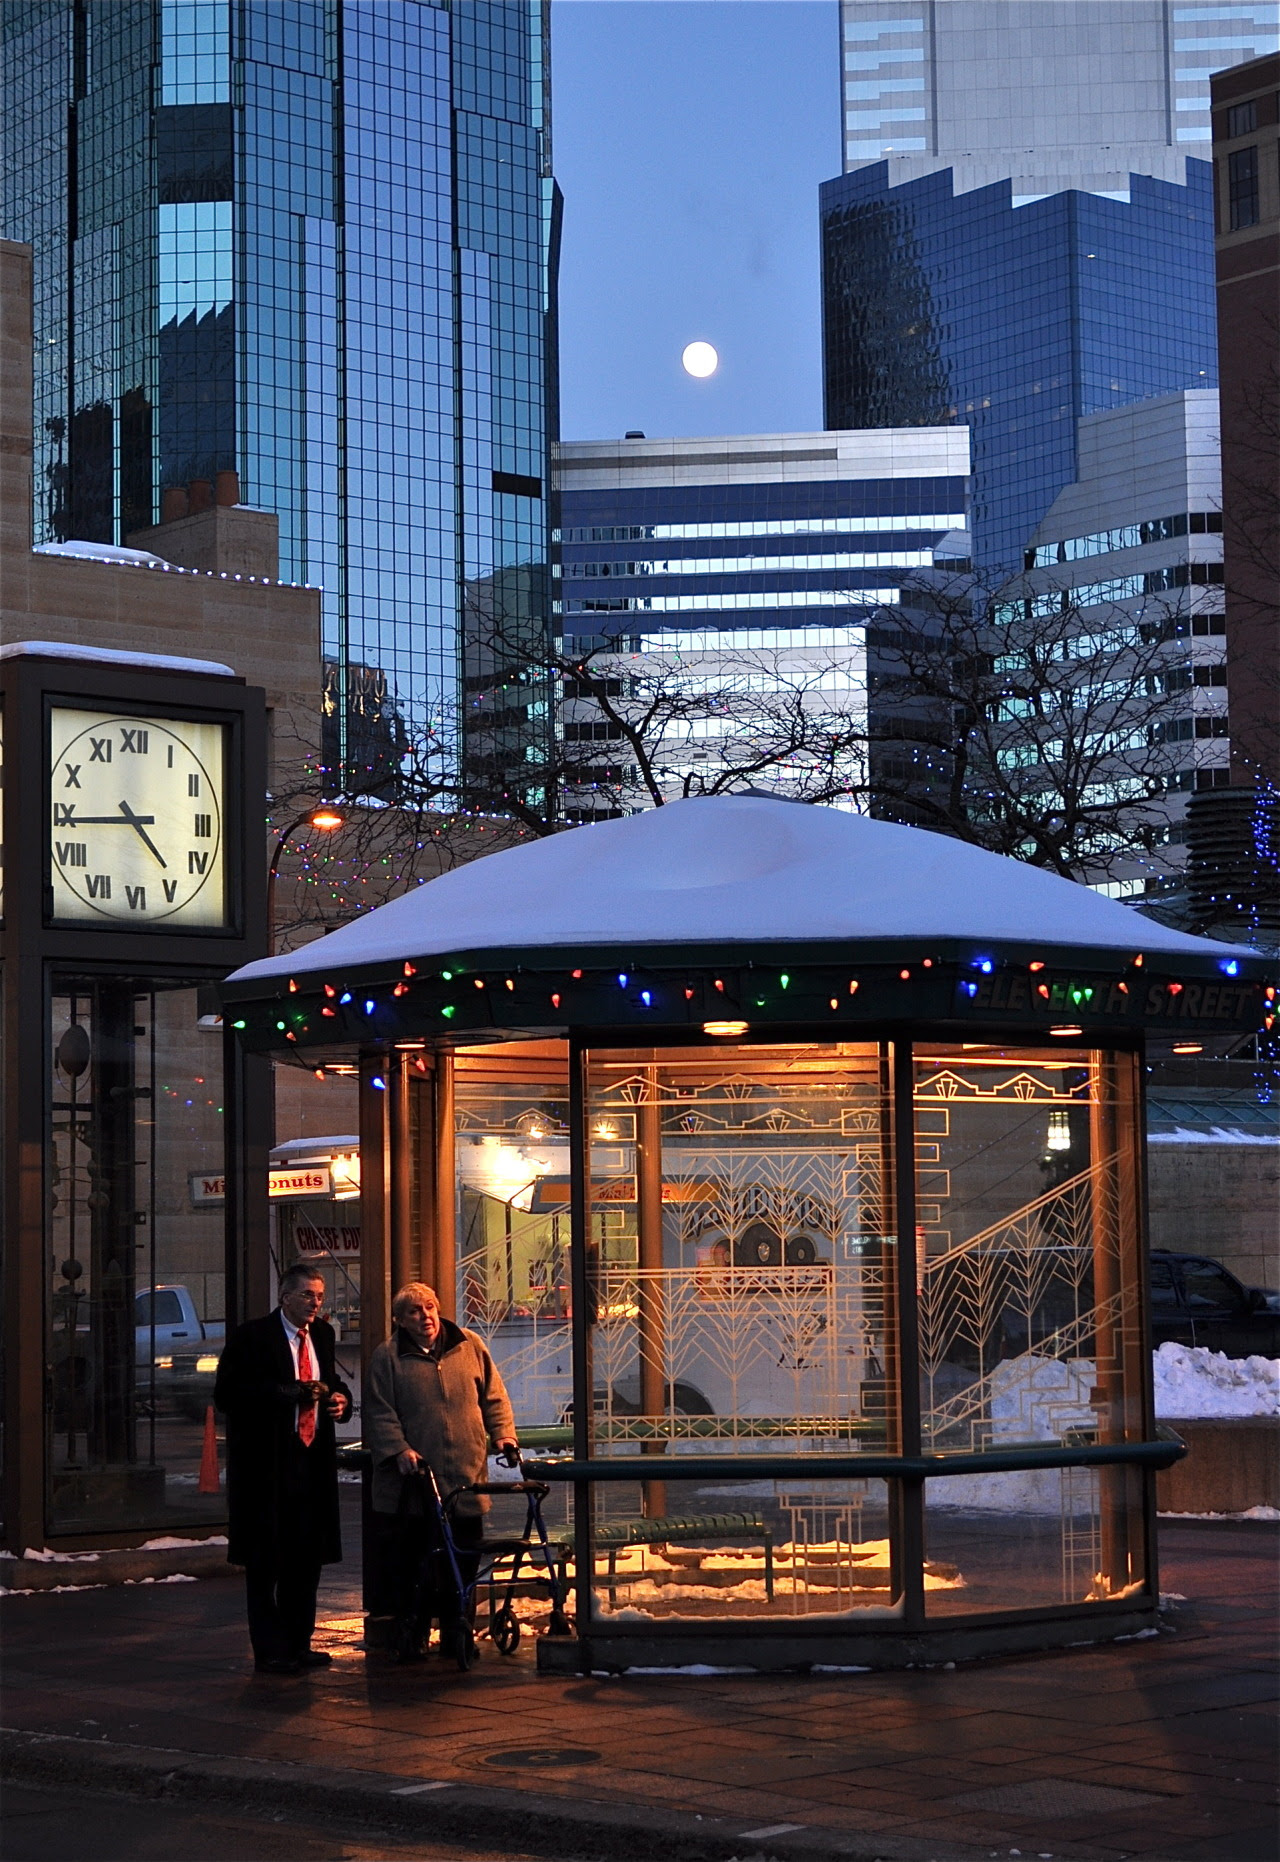 http://stuffaboutminneapolis.tumblr.com/post/105308146019/matt-barber58-moonrise-nicollet-mall